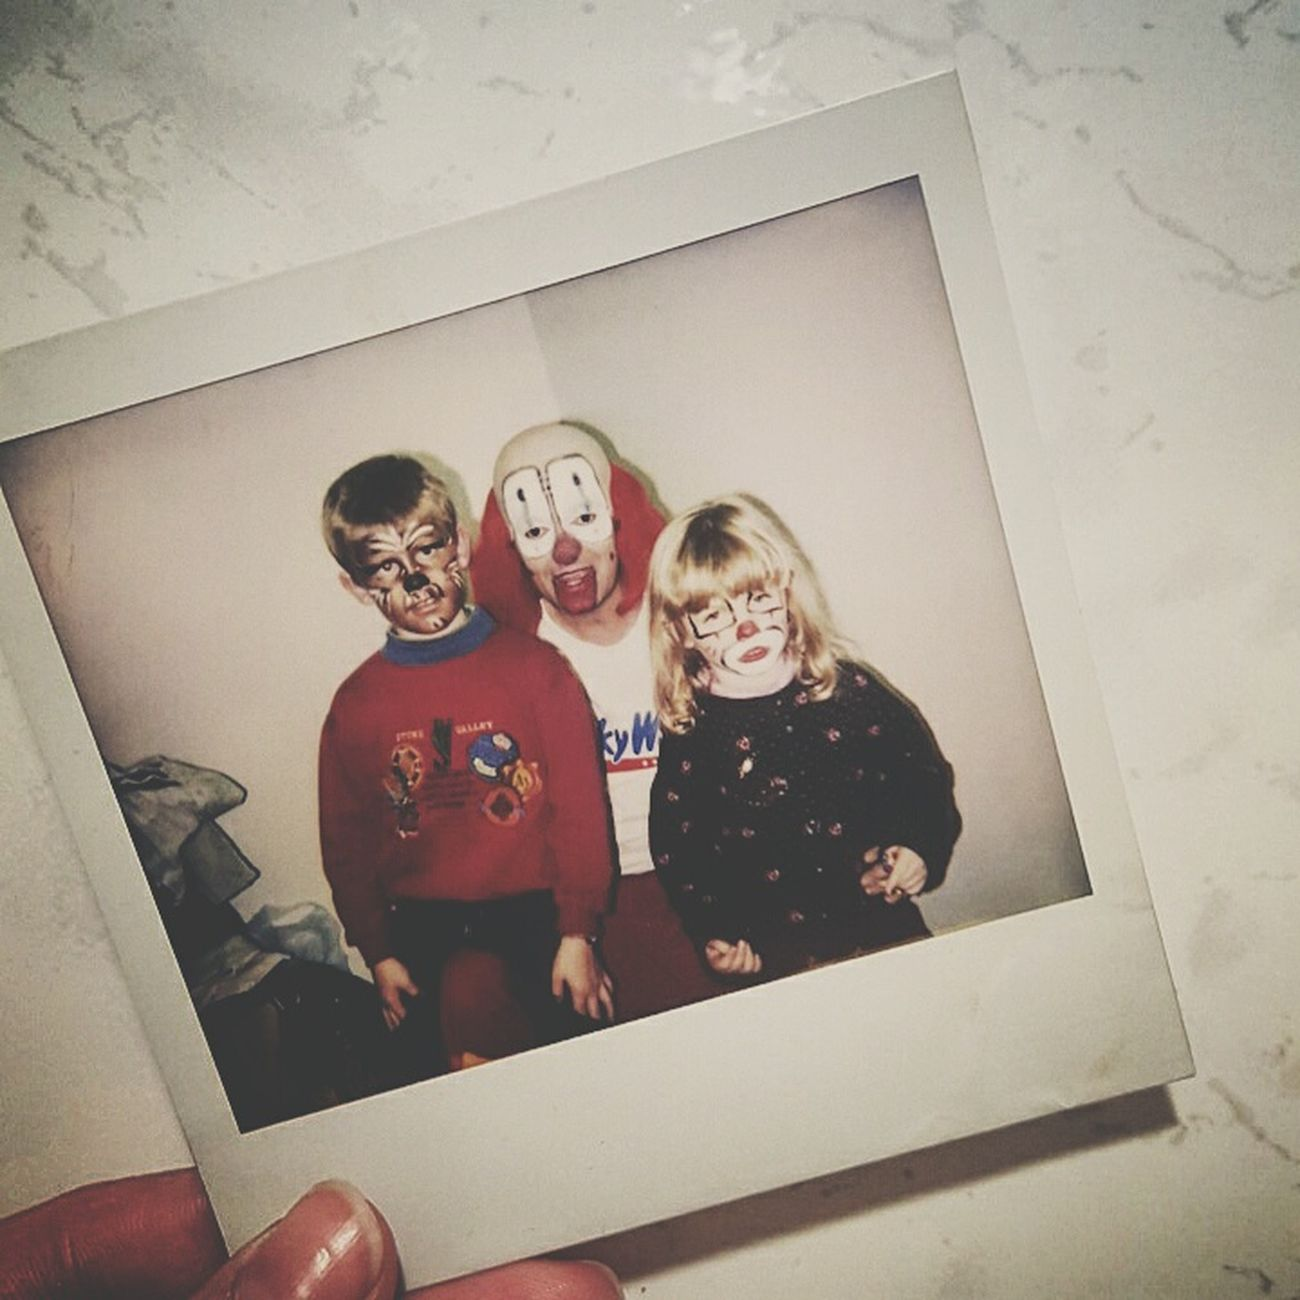 Not entertained. Entertaining Stupid Clown Cool Kids Natural Hair Kid Nostalgic  Girl Brother Buddy Blonde Blonde Hair Polaroid 90s Kid 90s